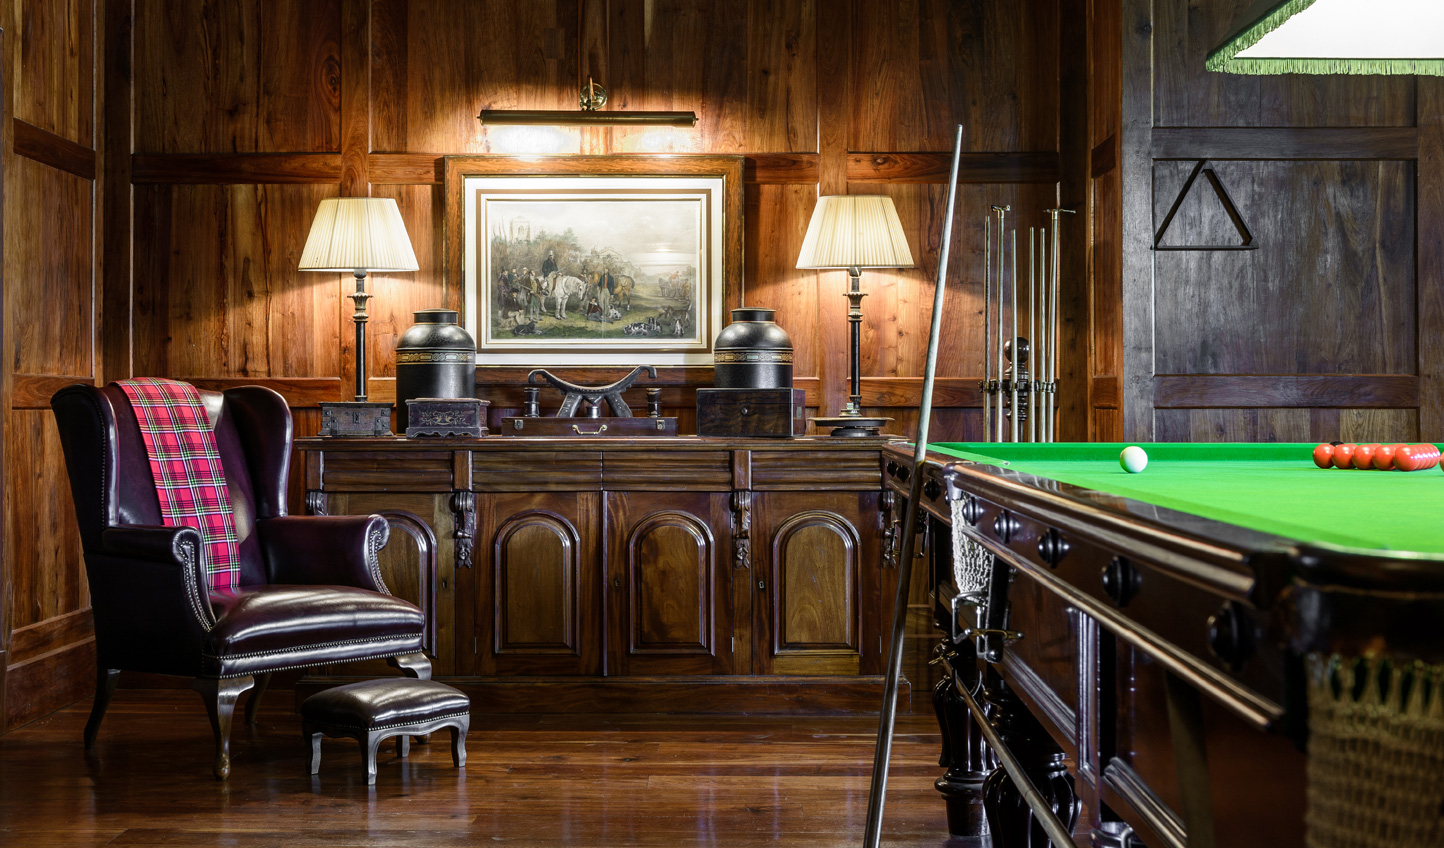 Relax with a game of billiards